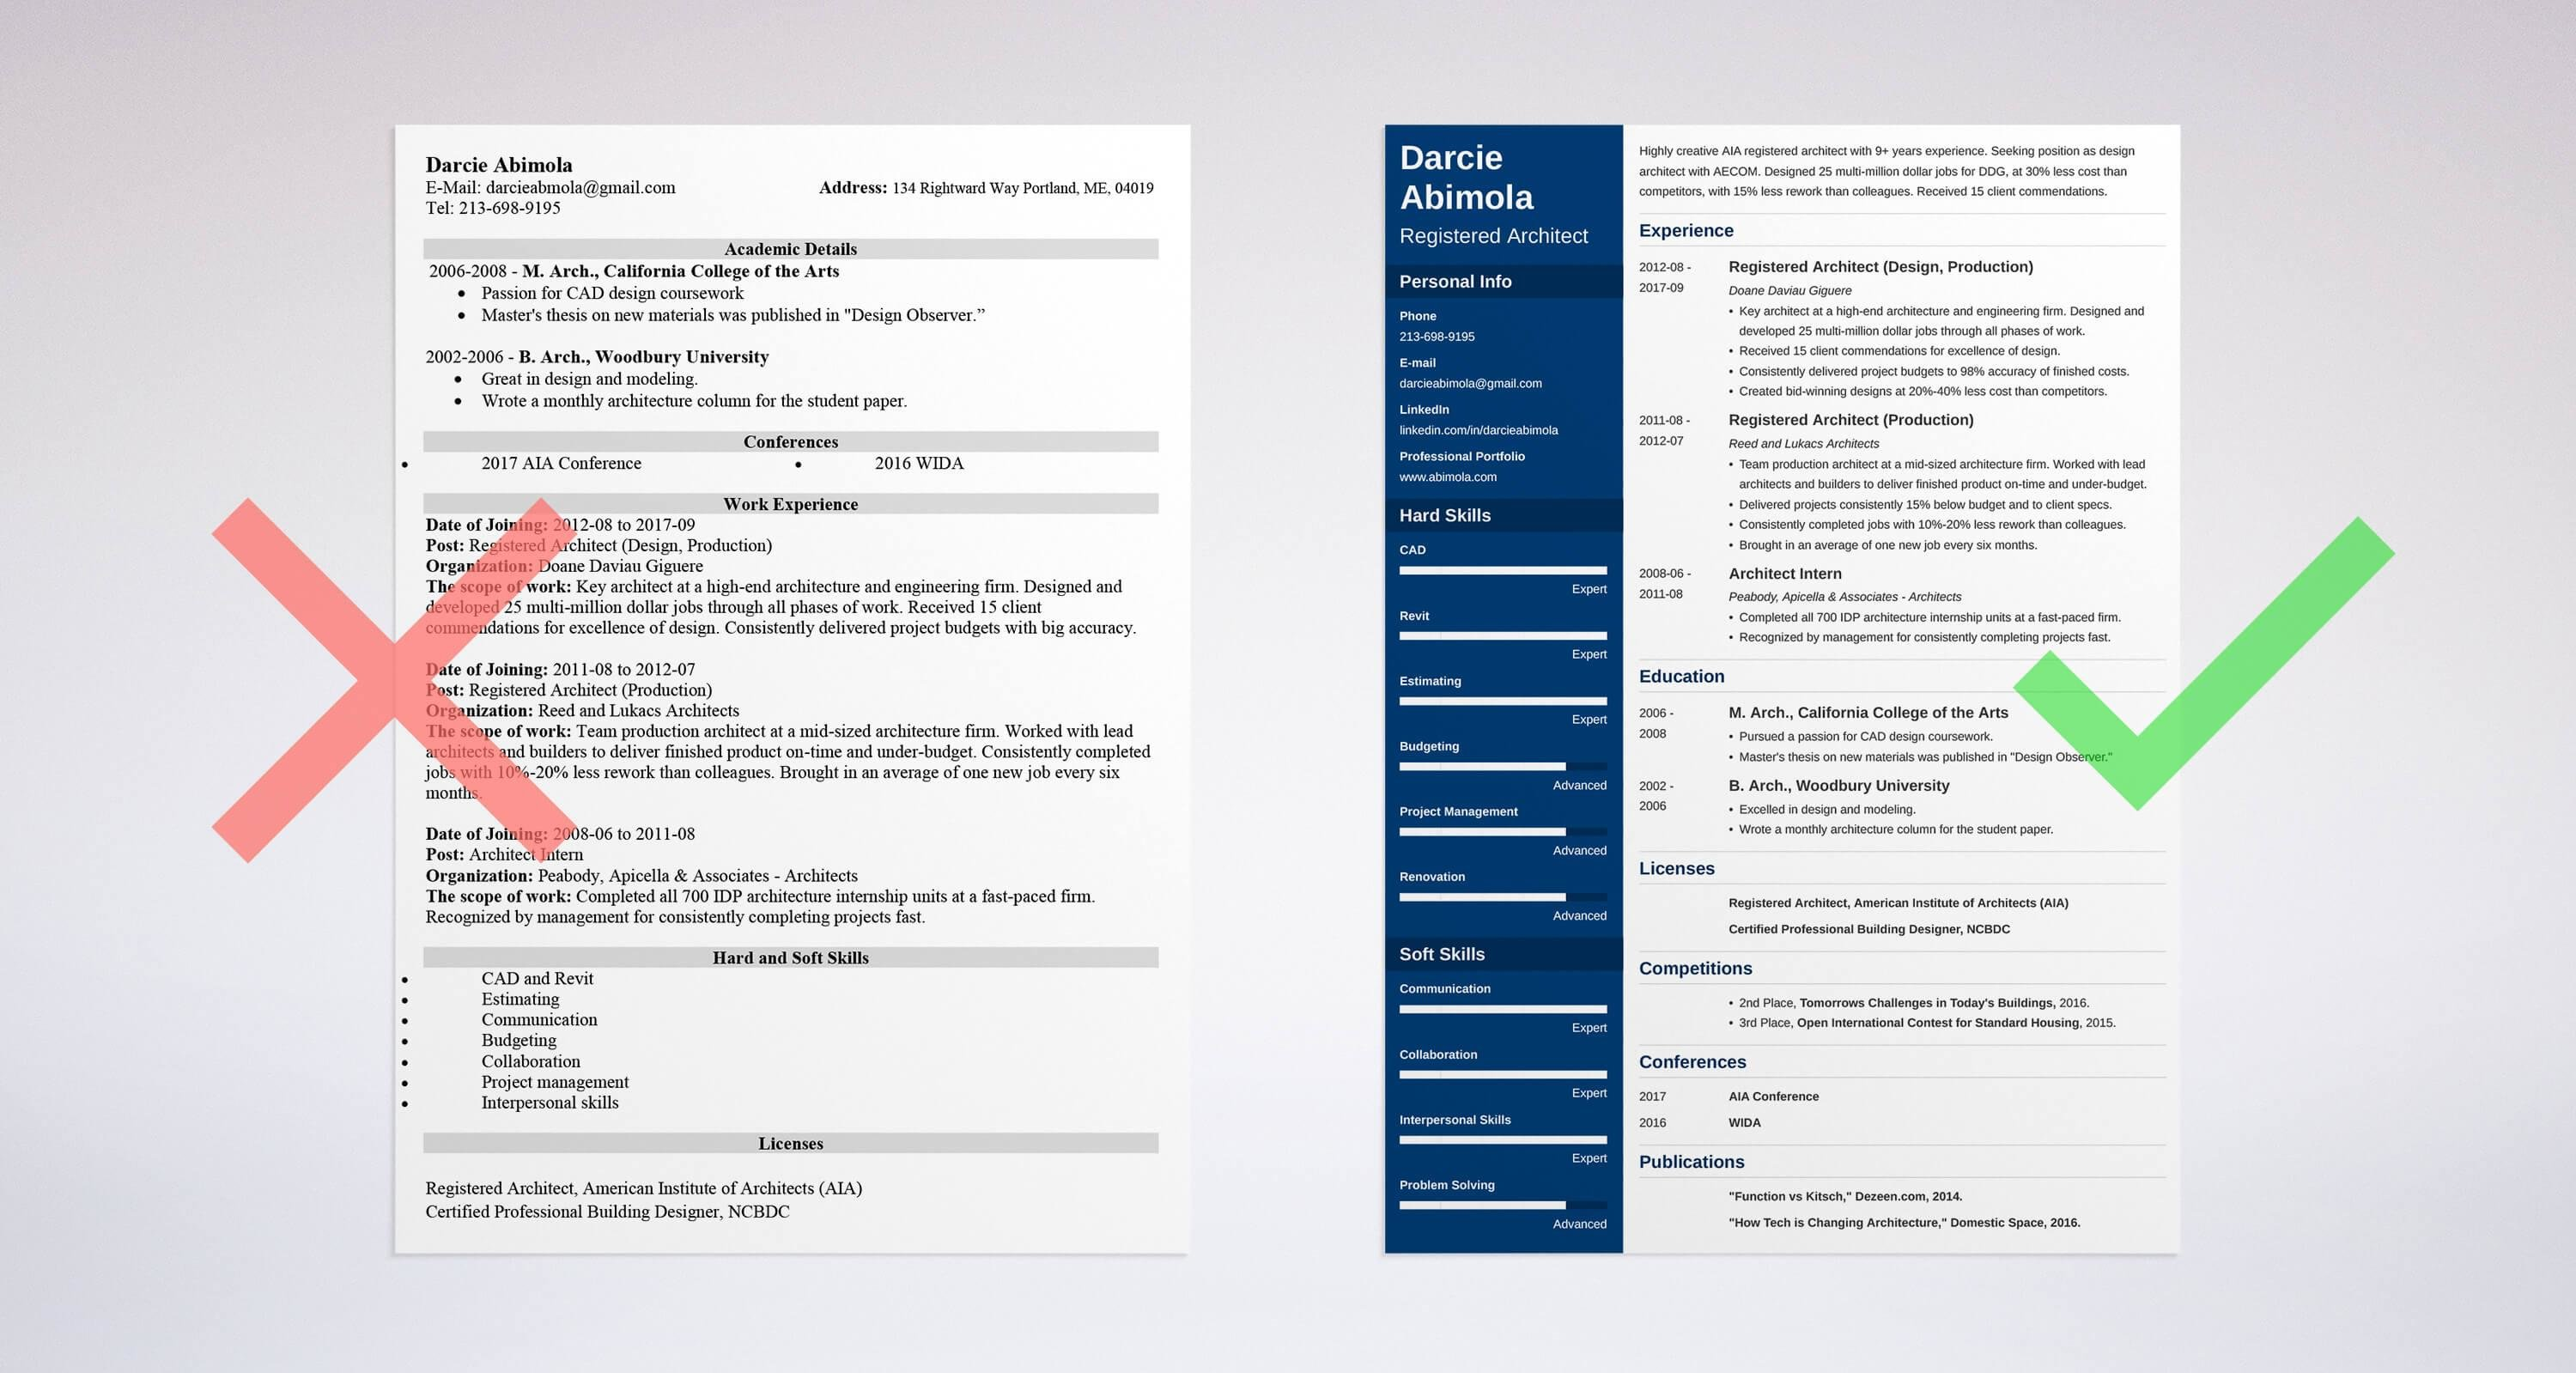 Architecture Resume: Sample and Complete Guide [+20 Examples]